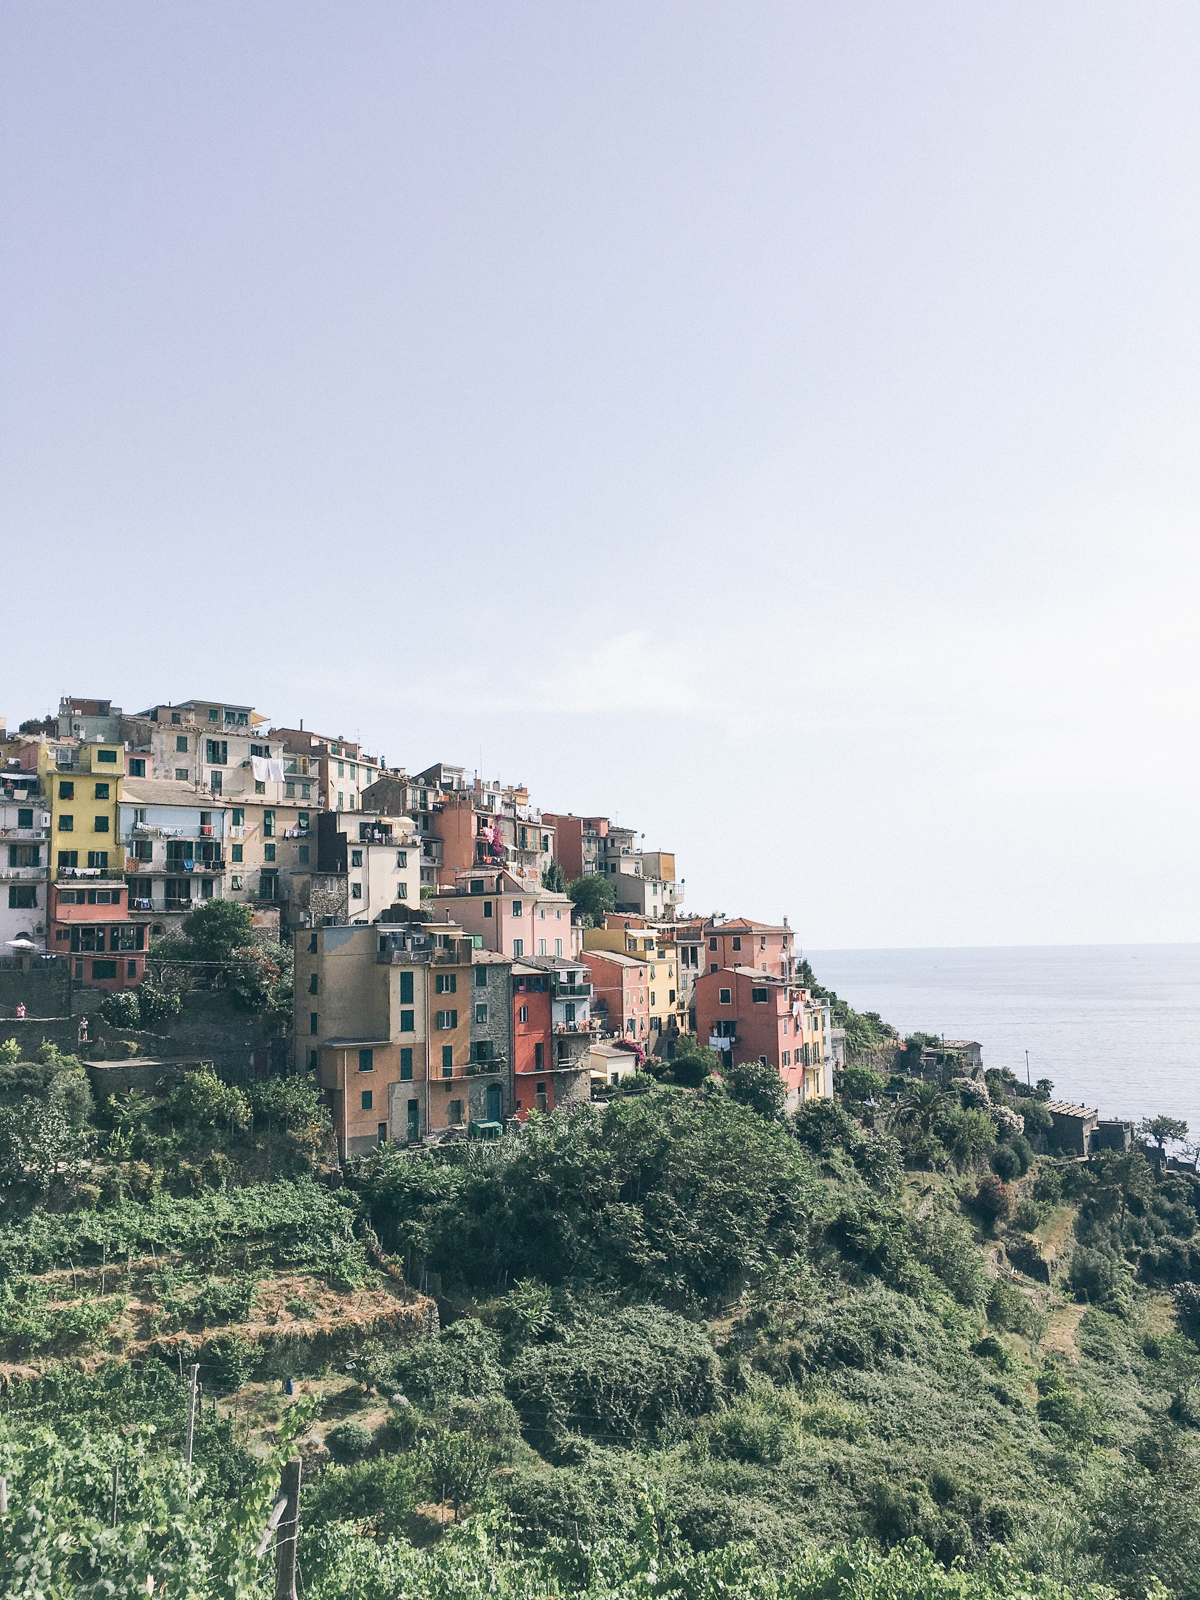 How (Not) to See Cinque Terre, Italy in One Day   You just can't see all five towns on a day trip! But with this guide of the best things to do (from beaches and hiking paths to food and views), you can plan your own perfect Cinque Terre itinerary - for one, two, or three days. #italy #cinqueterre #daytrip